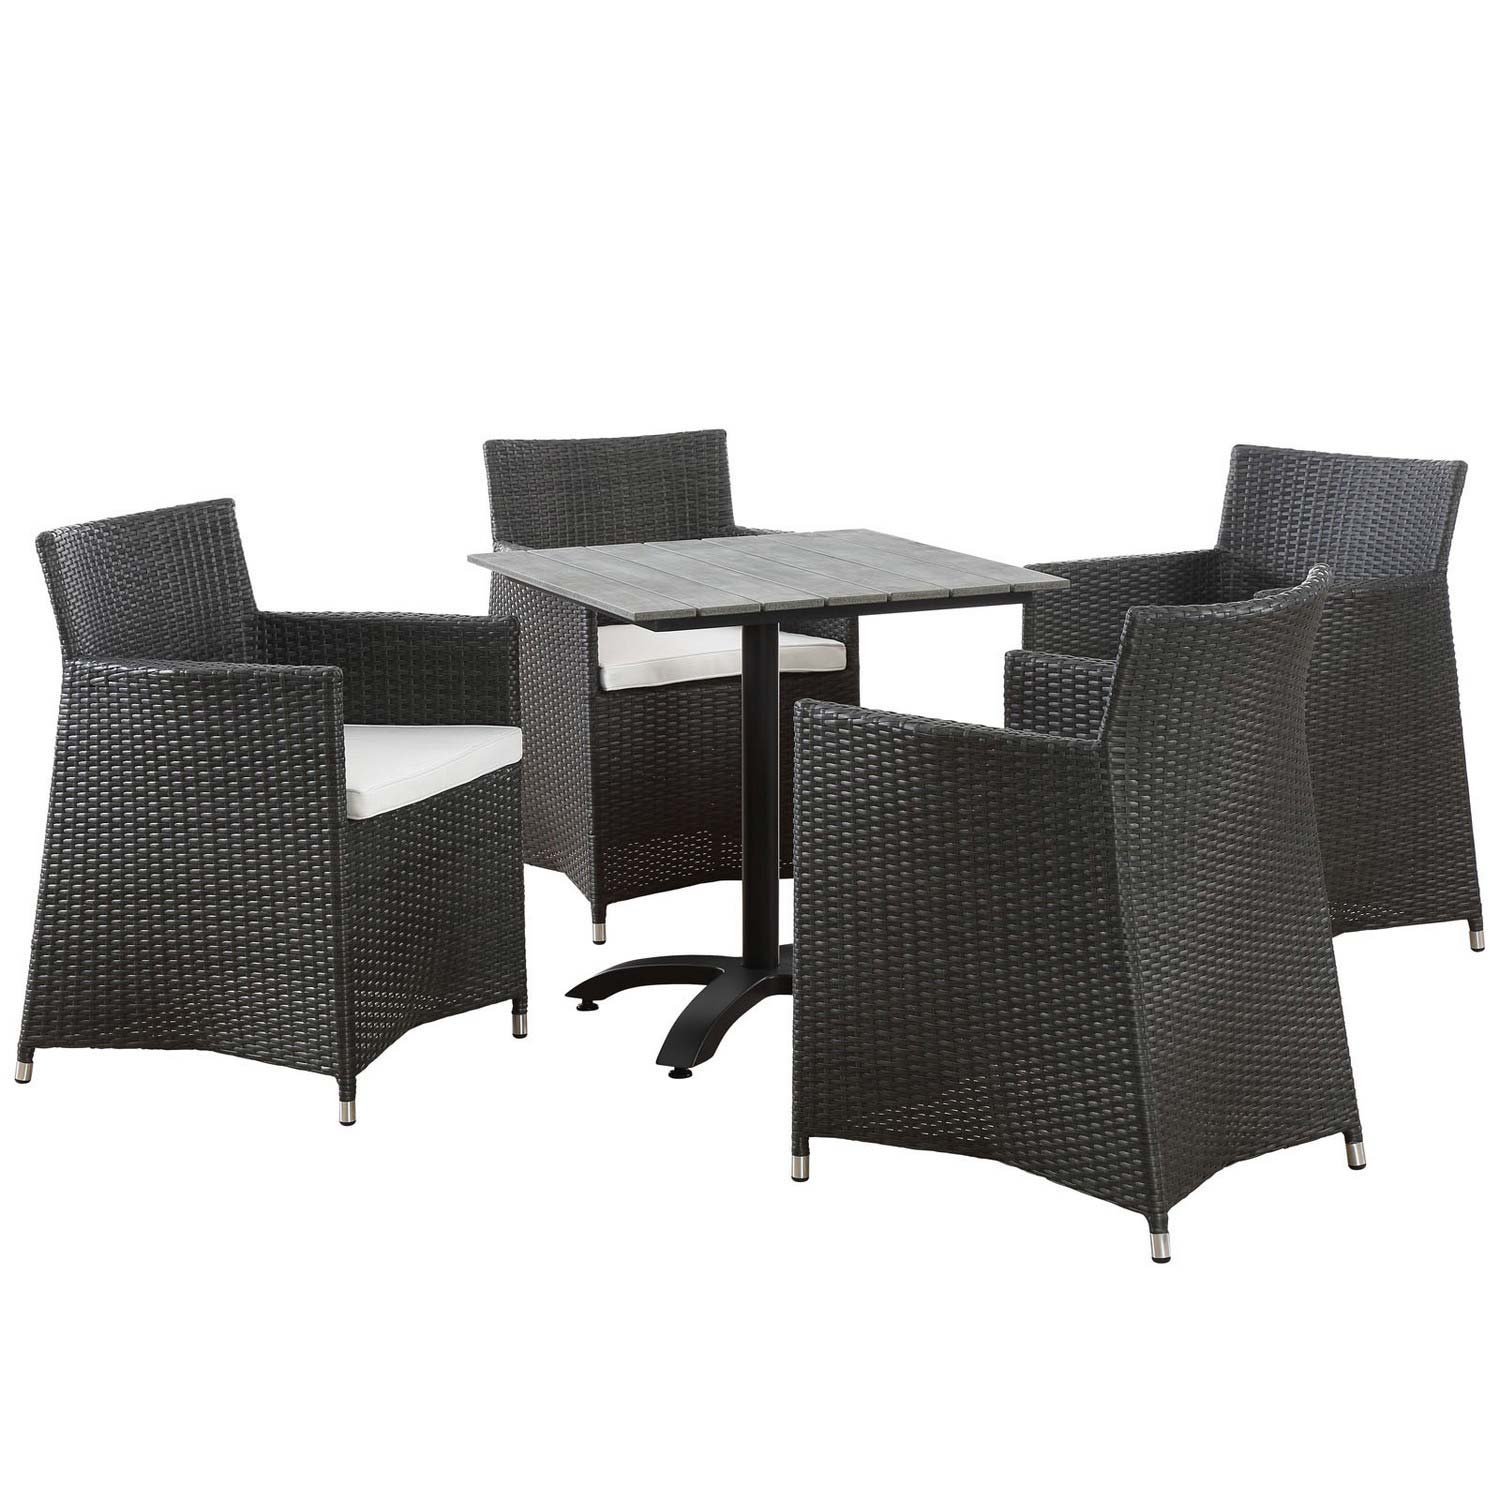 Modway Junction 5 Piece Outdoor Patio Dining Set - Brown/White